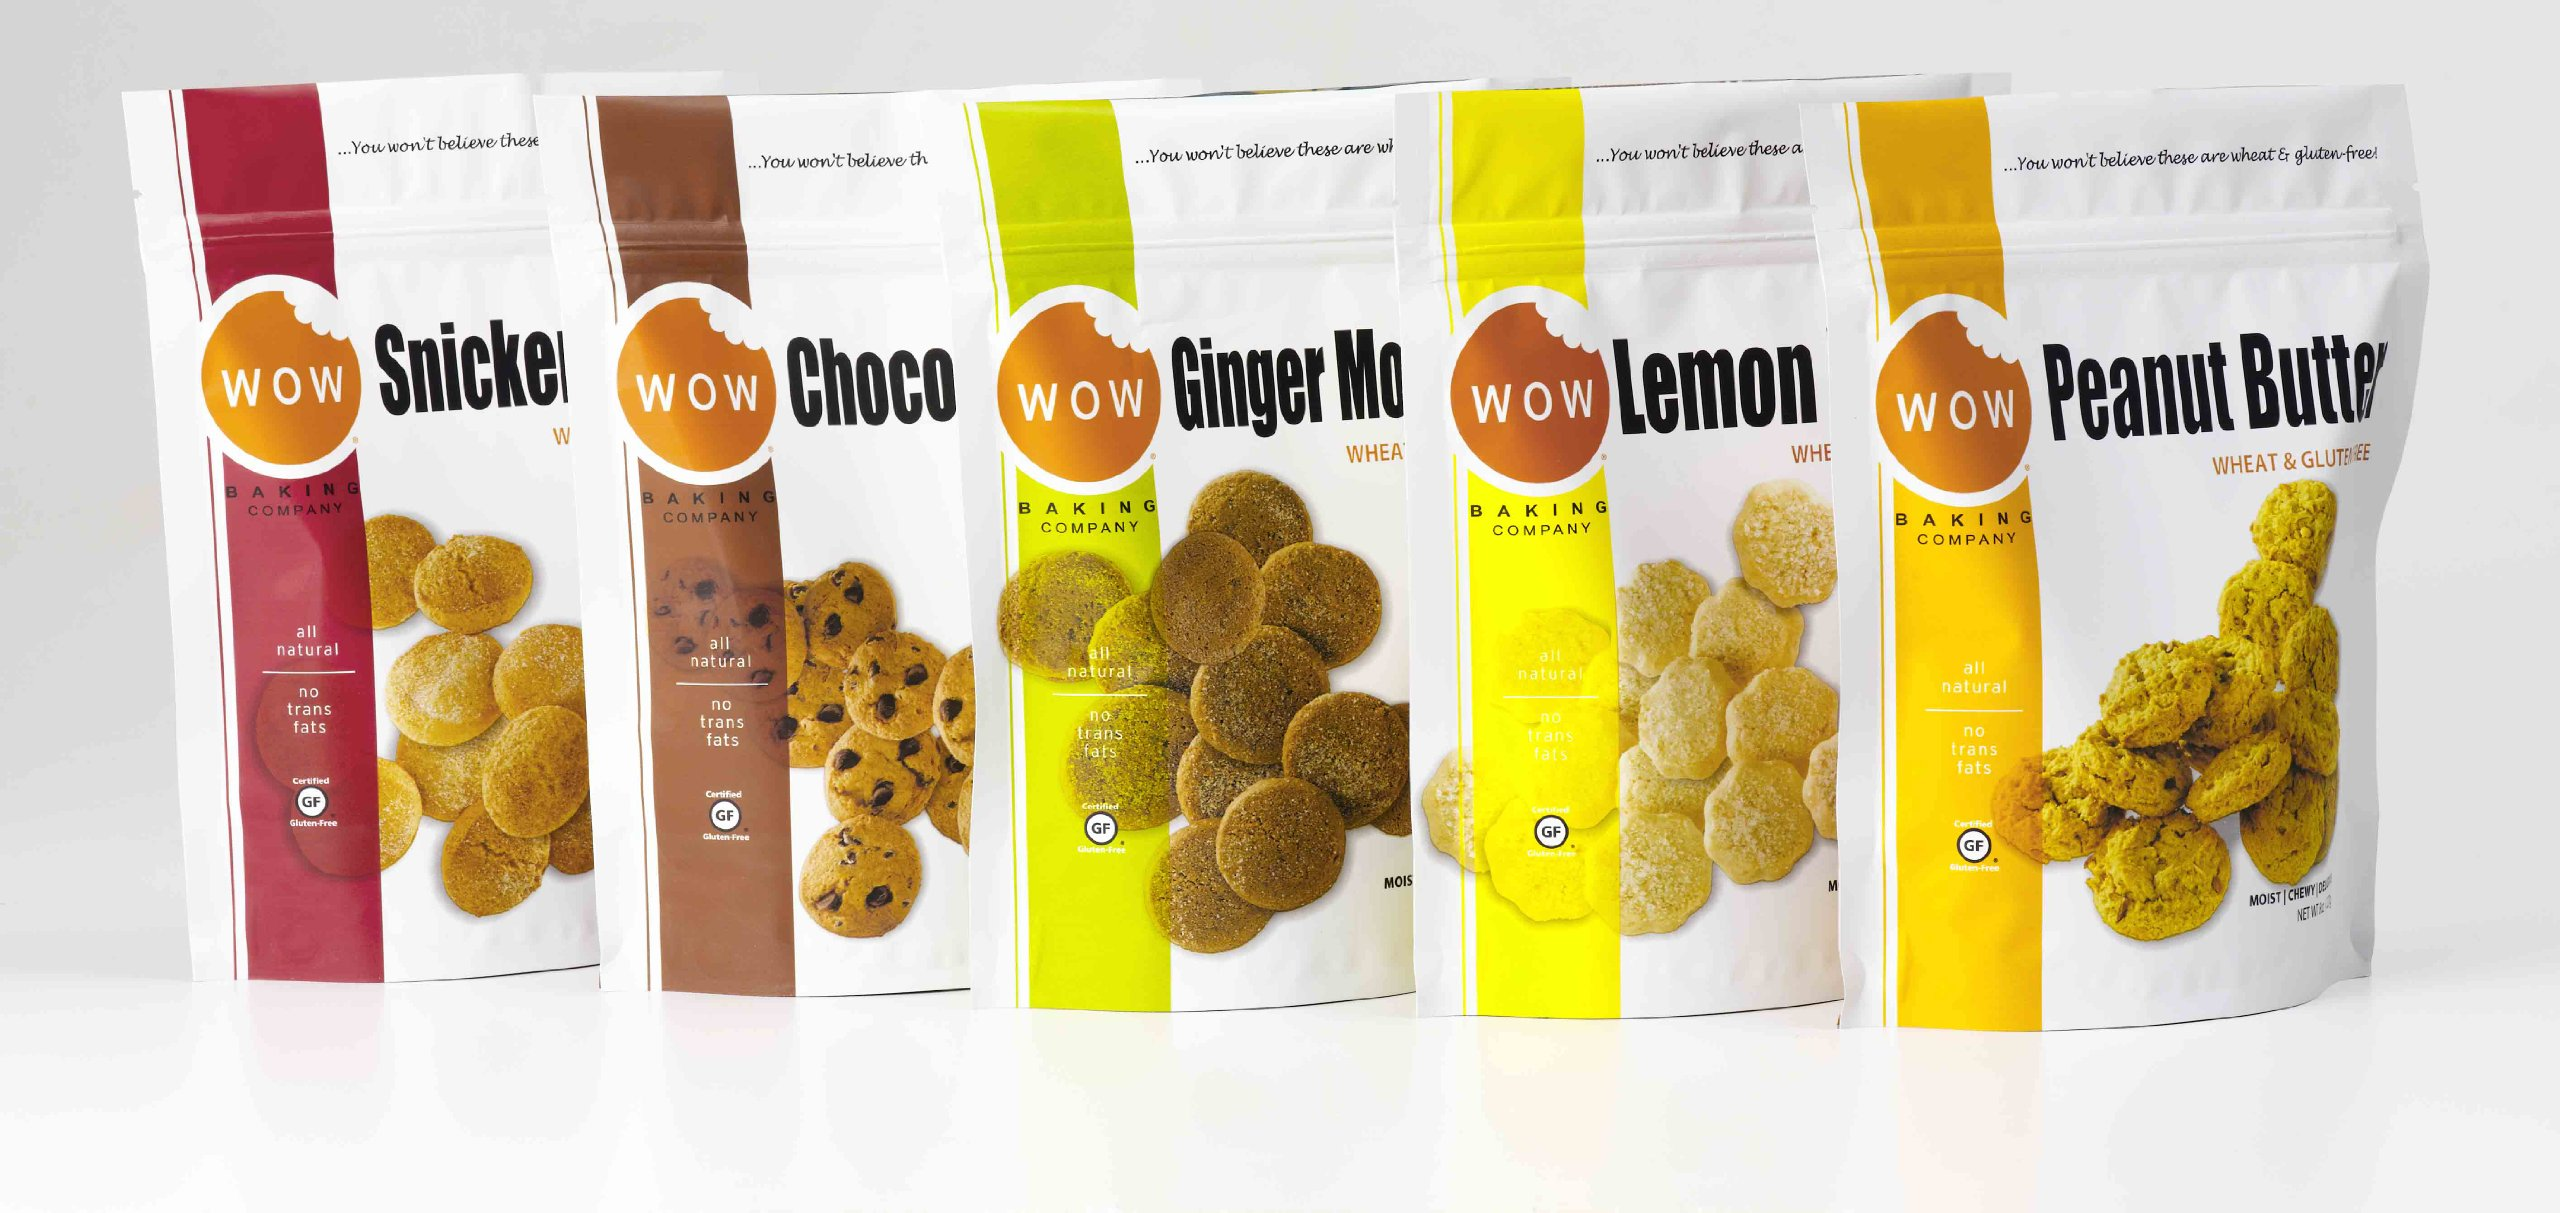 Wow Baking Company Bagged Cookies,5 Variety Pack, 8-Ounce by WOW Baking Company